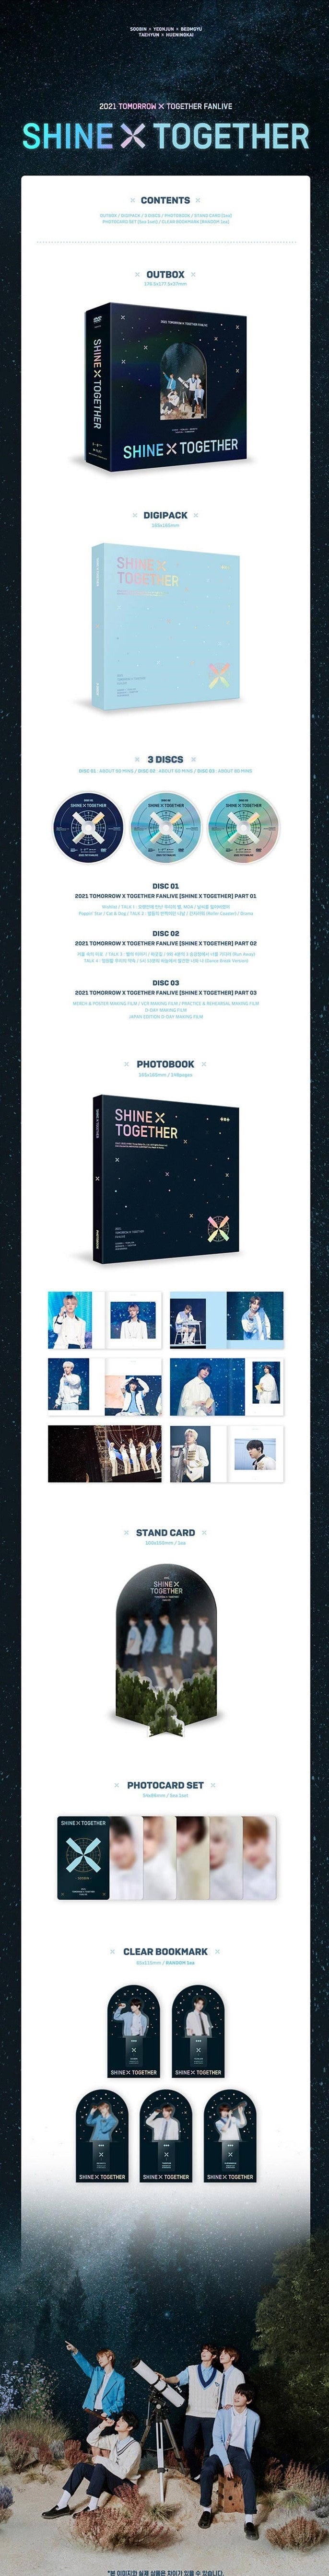 TXT 2021 FANLIVE SHINE X TOGETHER DVD Infographic